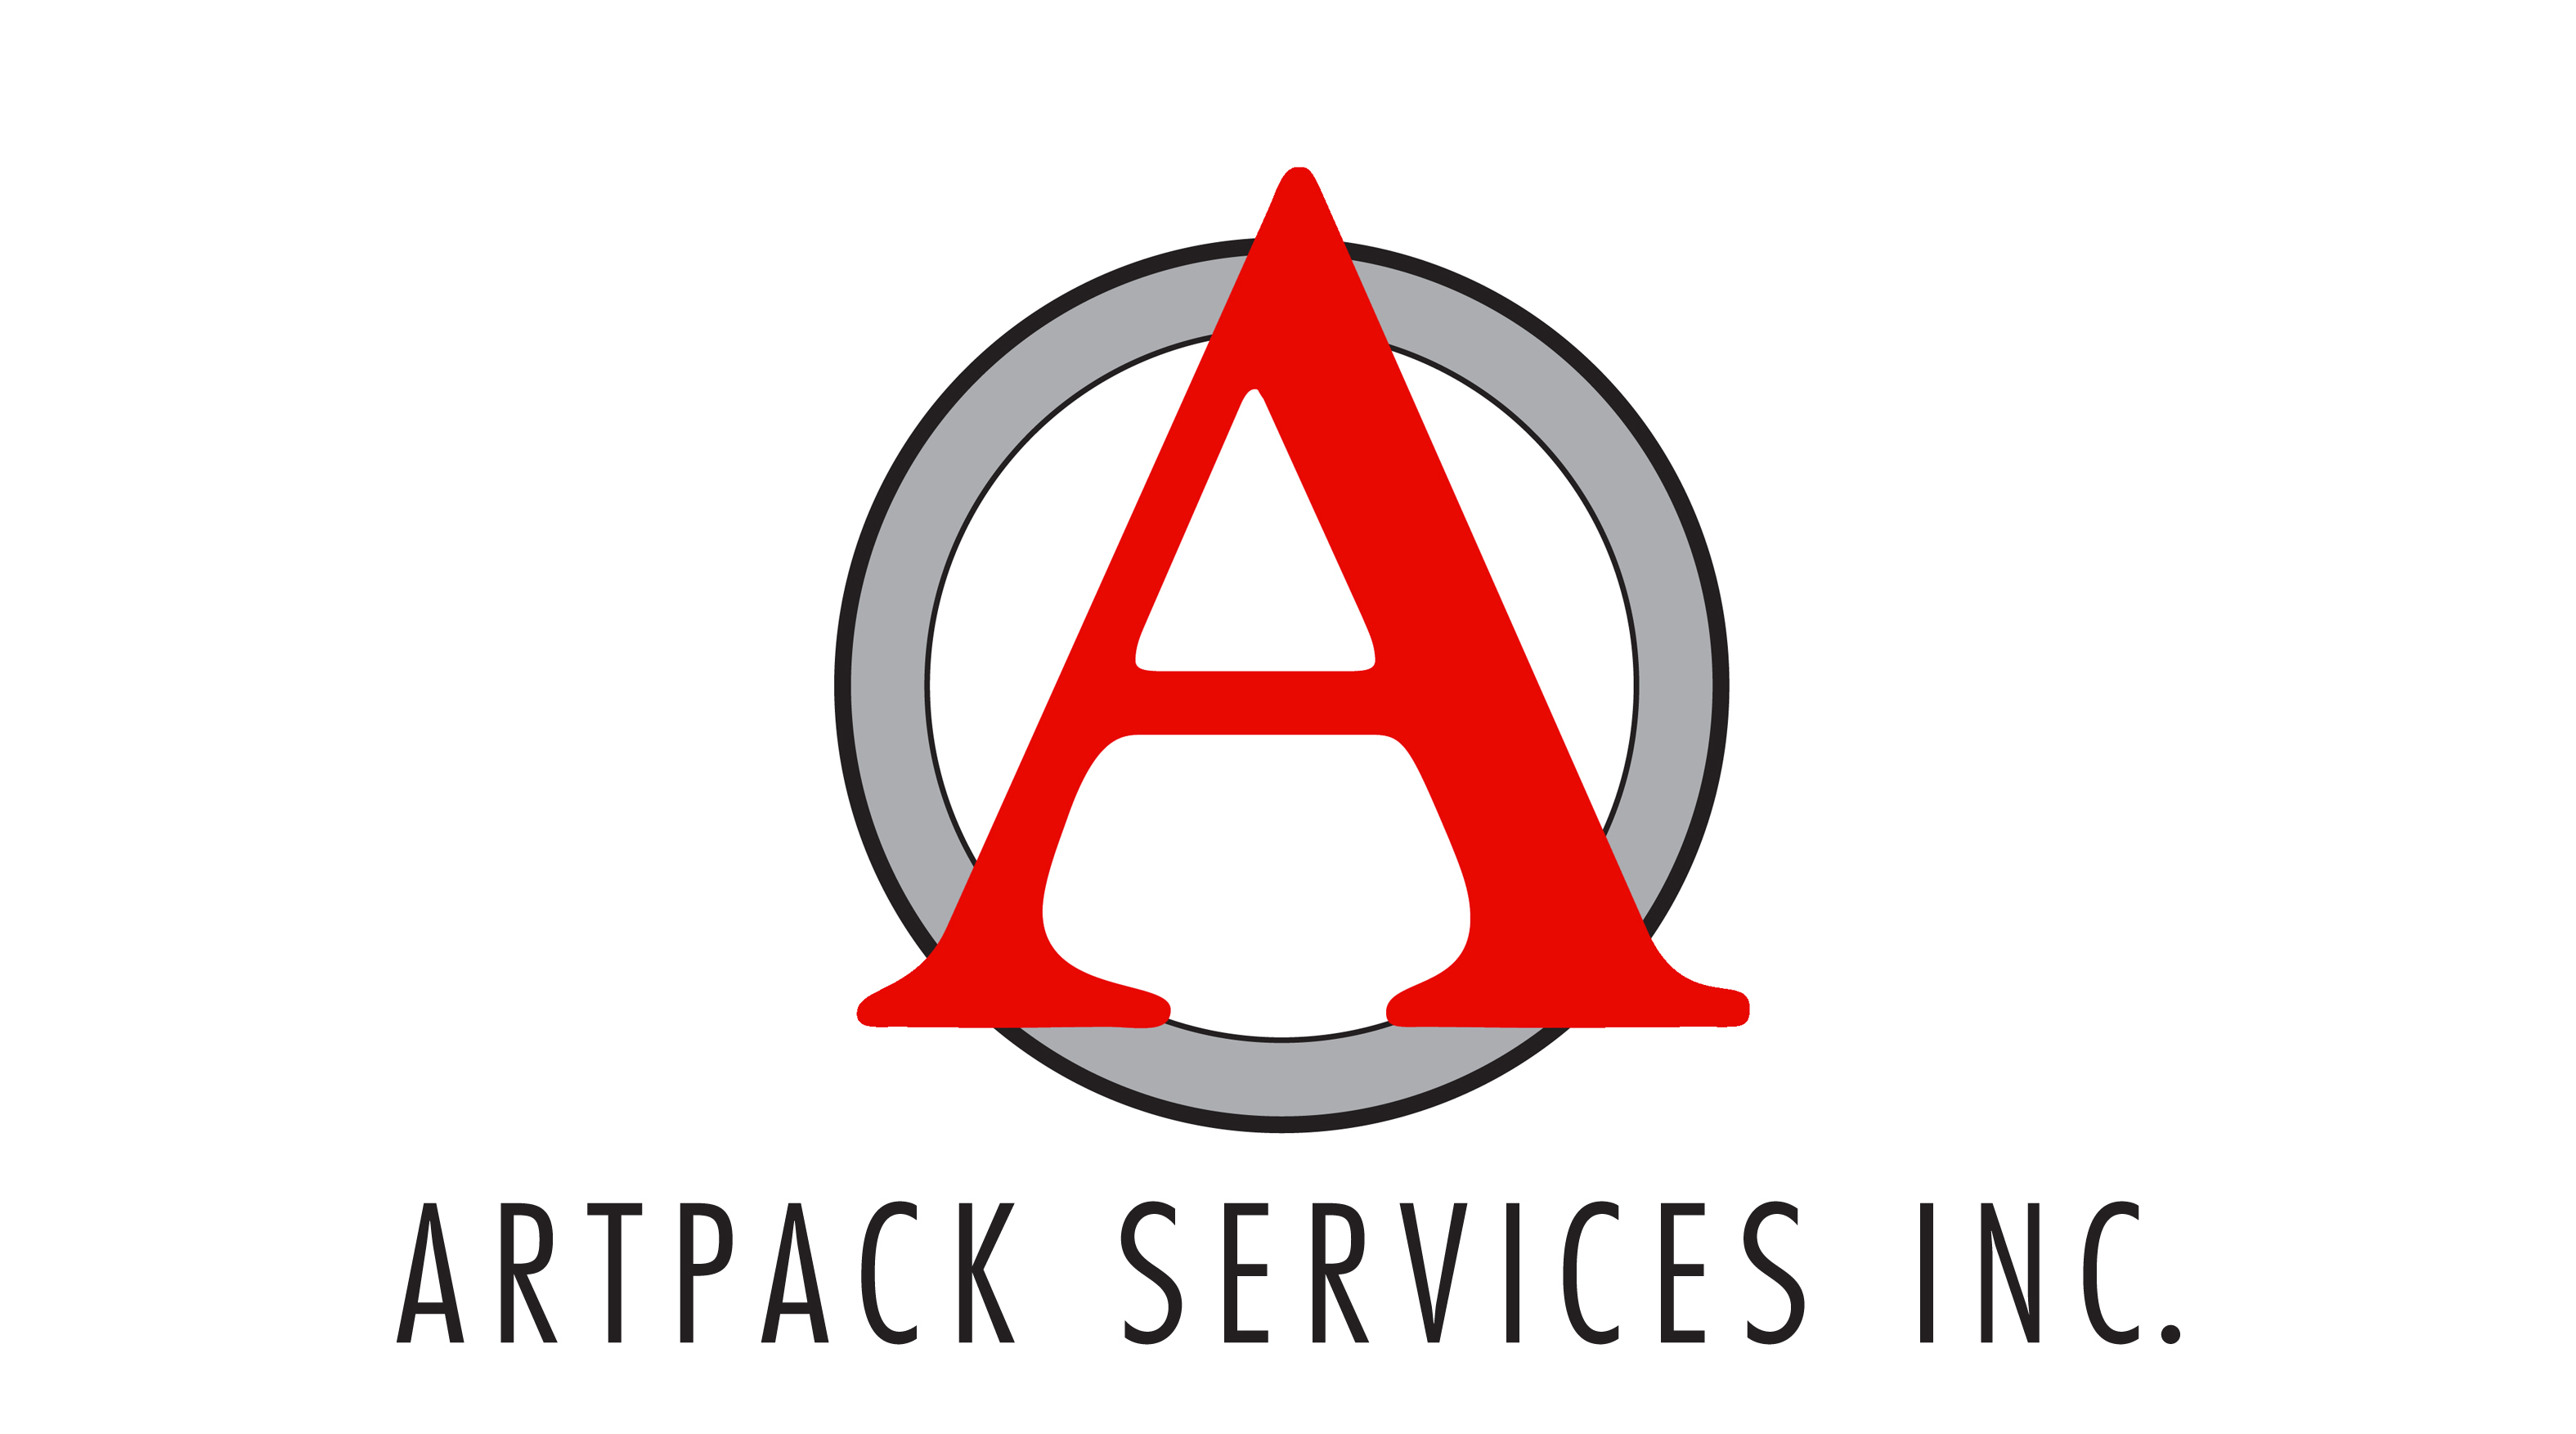 ArtPack Services, Inc.